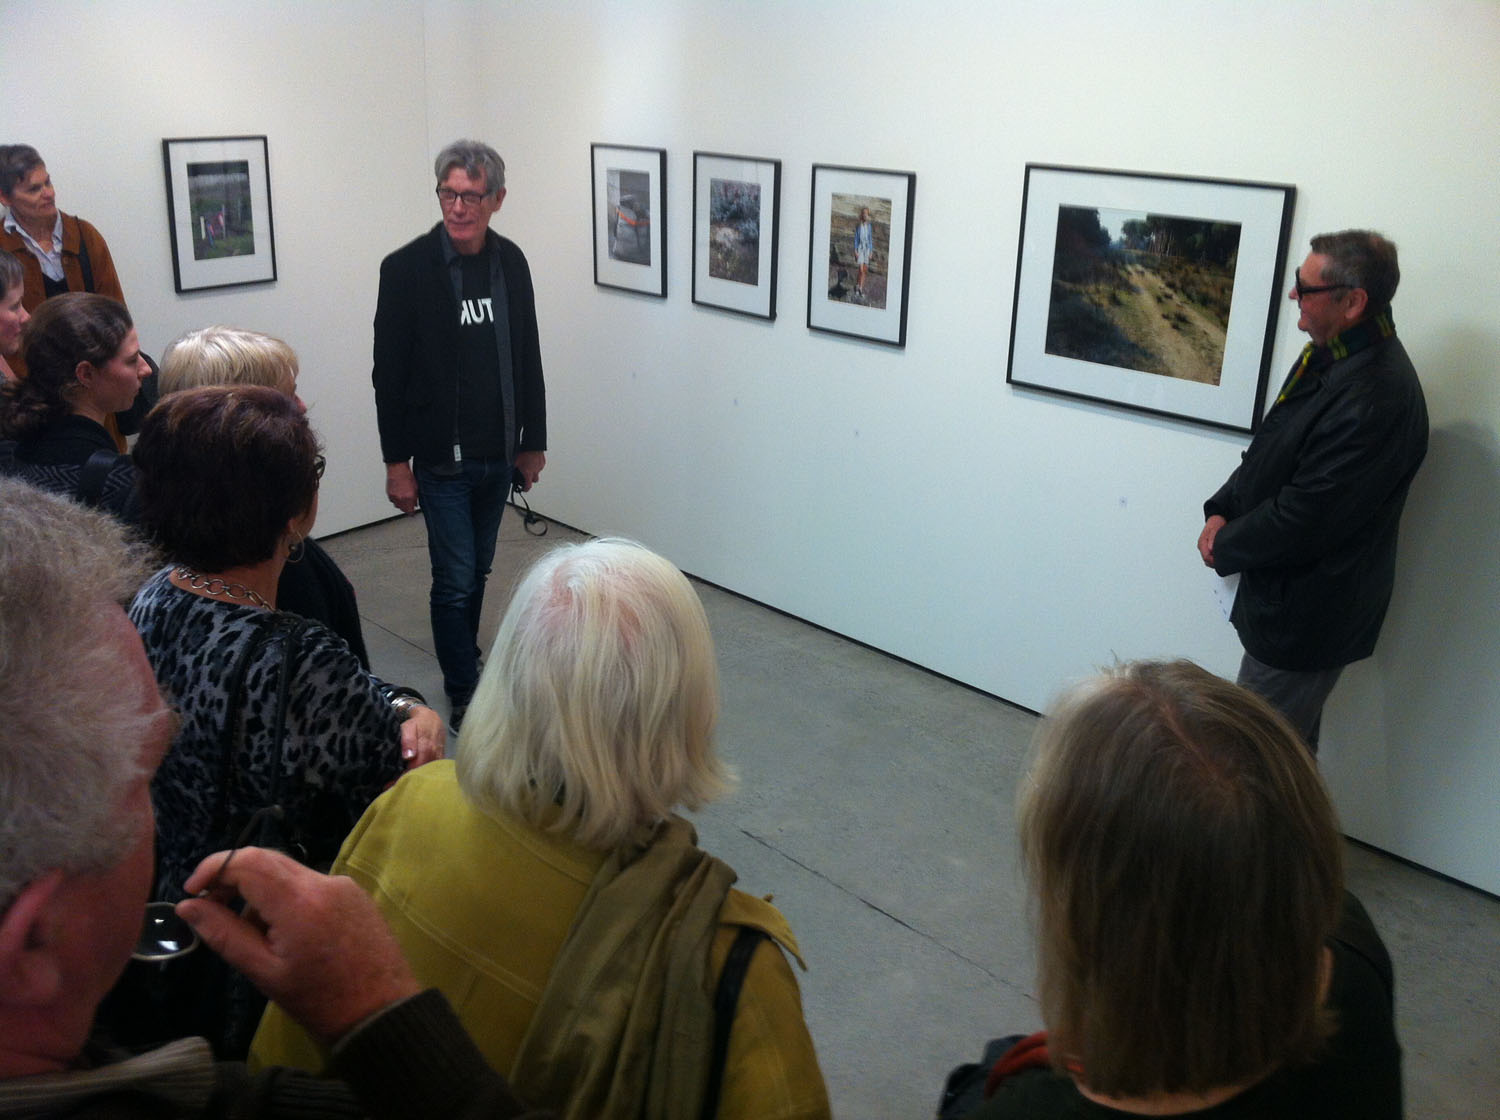 Harvey Benge discusses his work with Ron Brownson